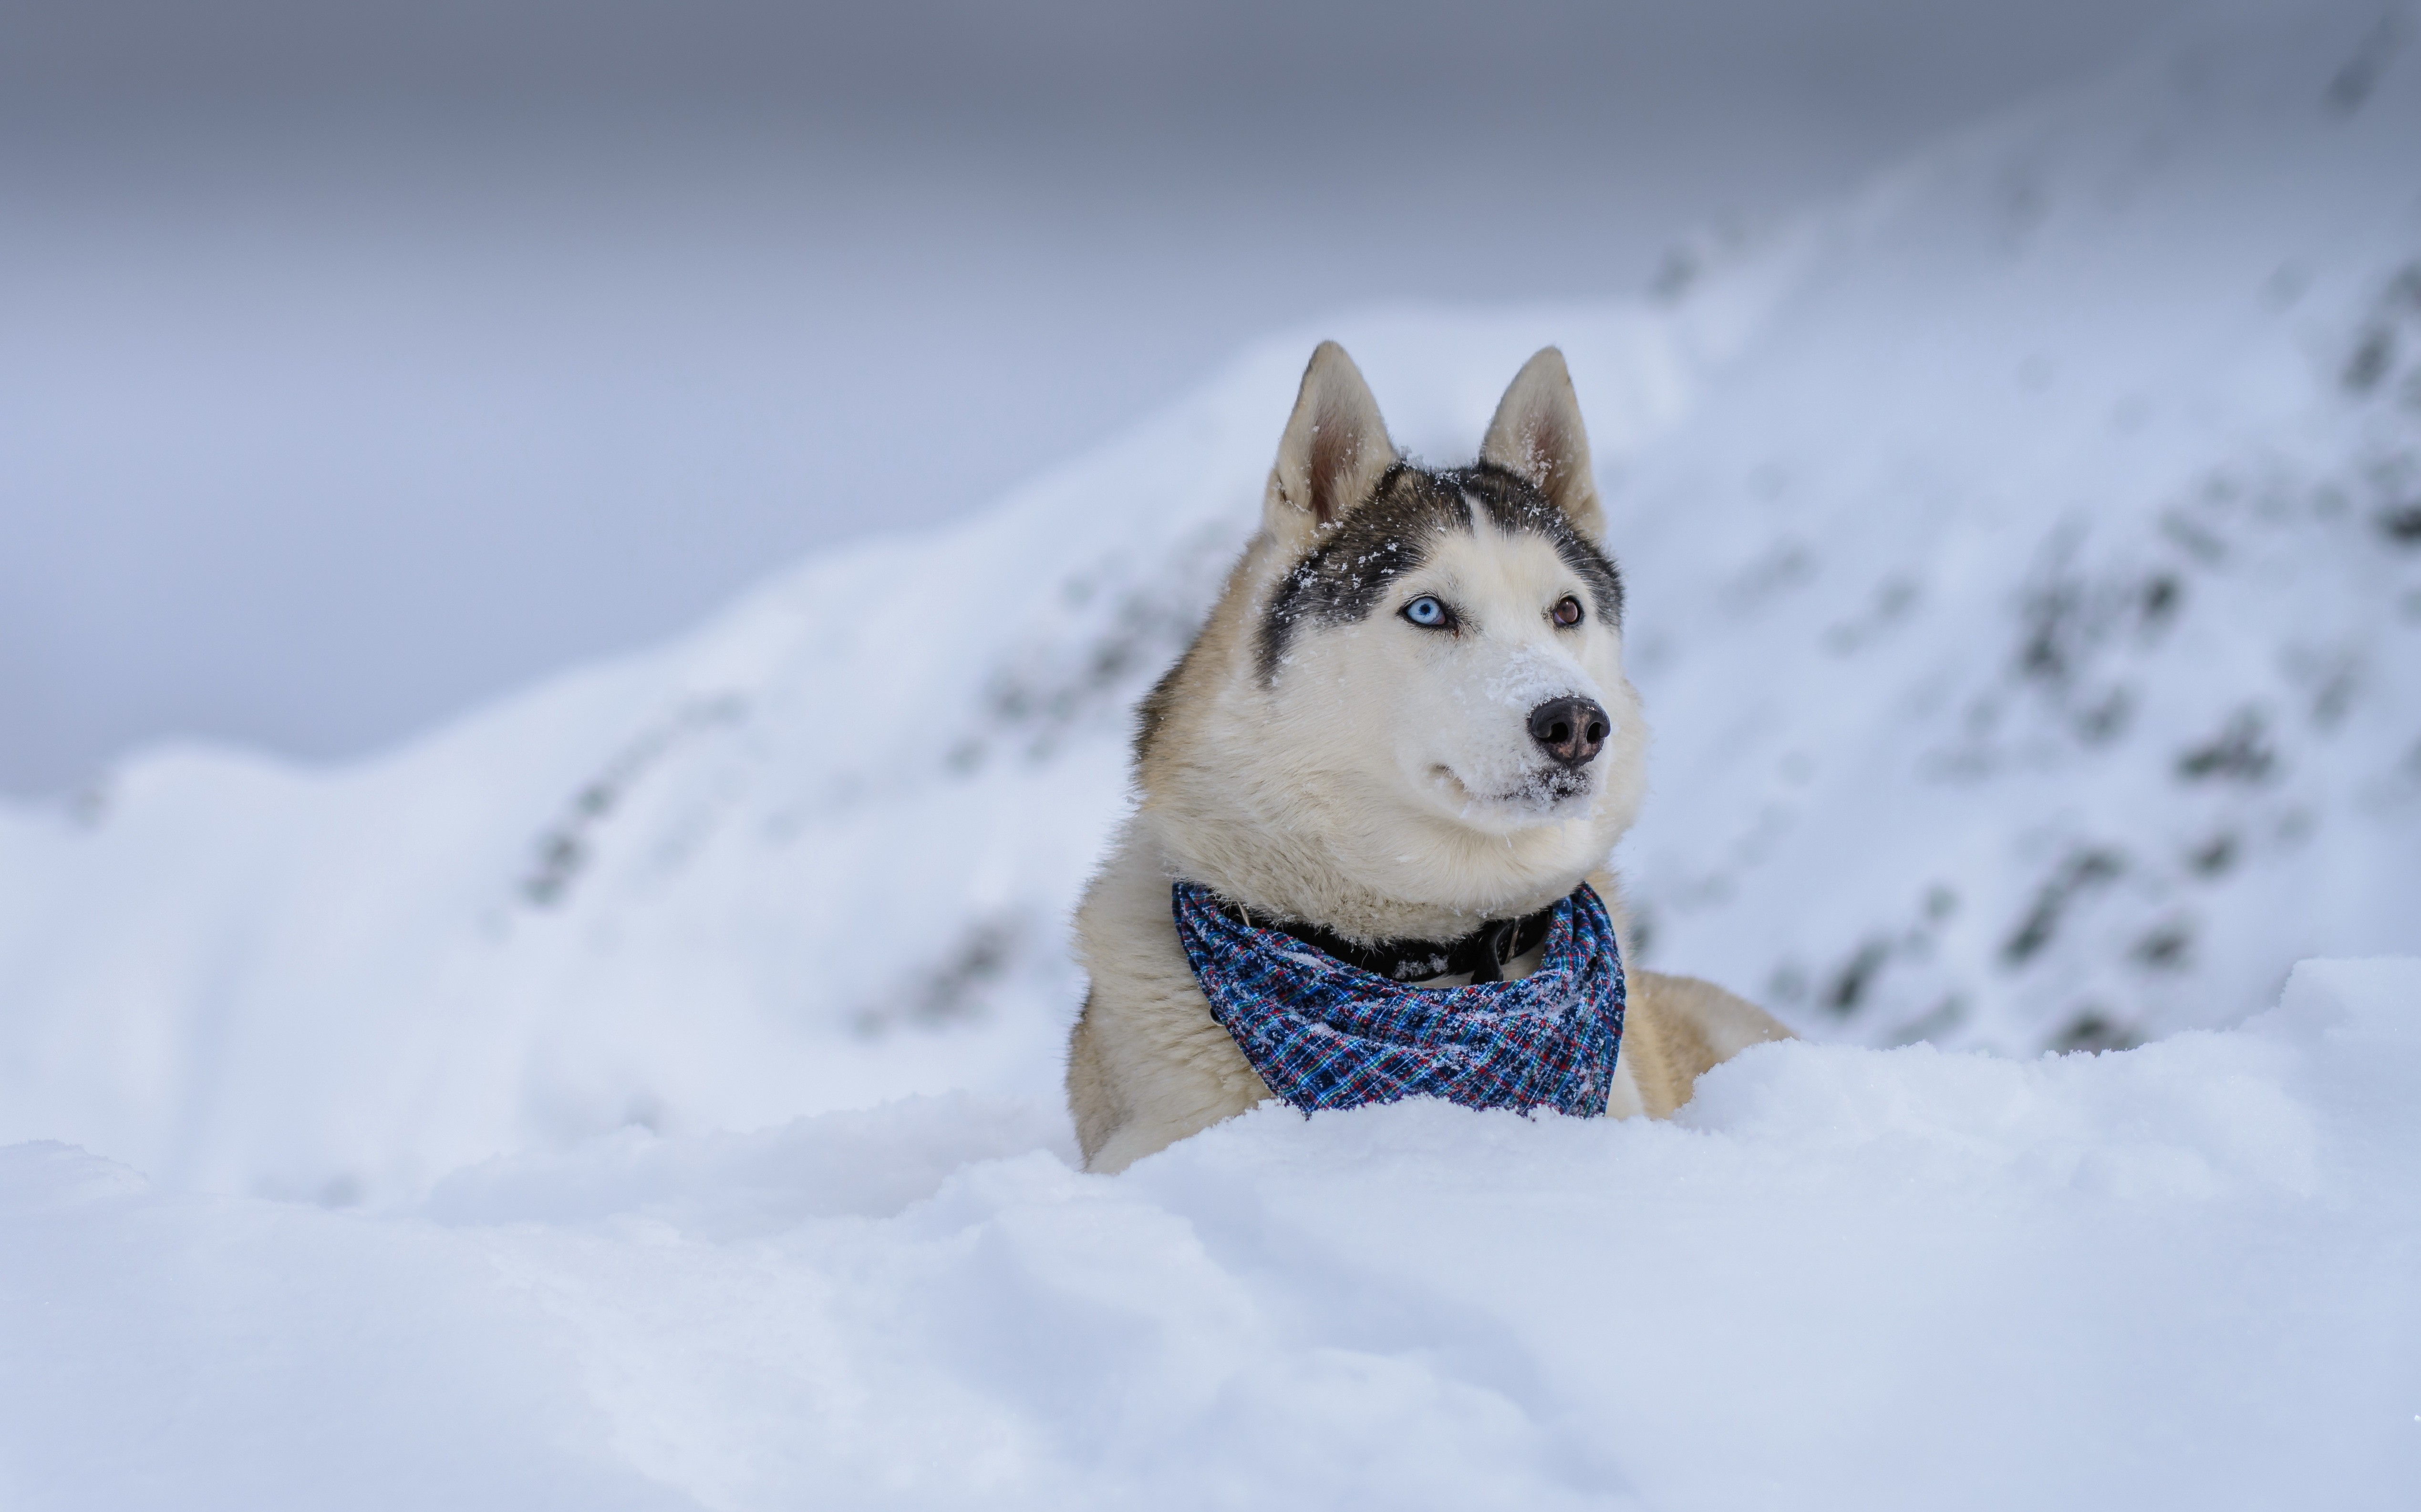 Cute Puppy Wallpapers For Iphone Wallpaper Dog Husky Cute Animals Snow Winter 5k